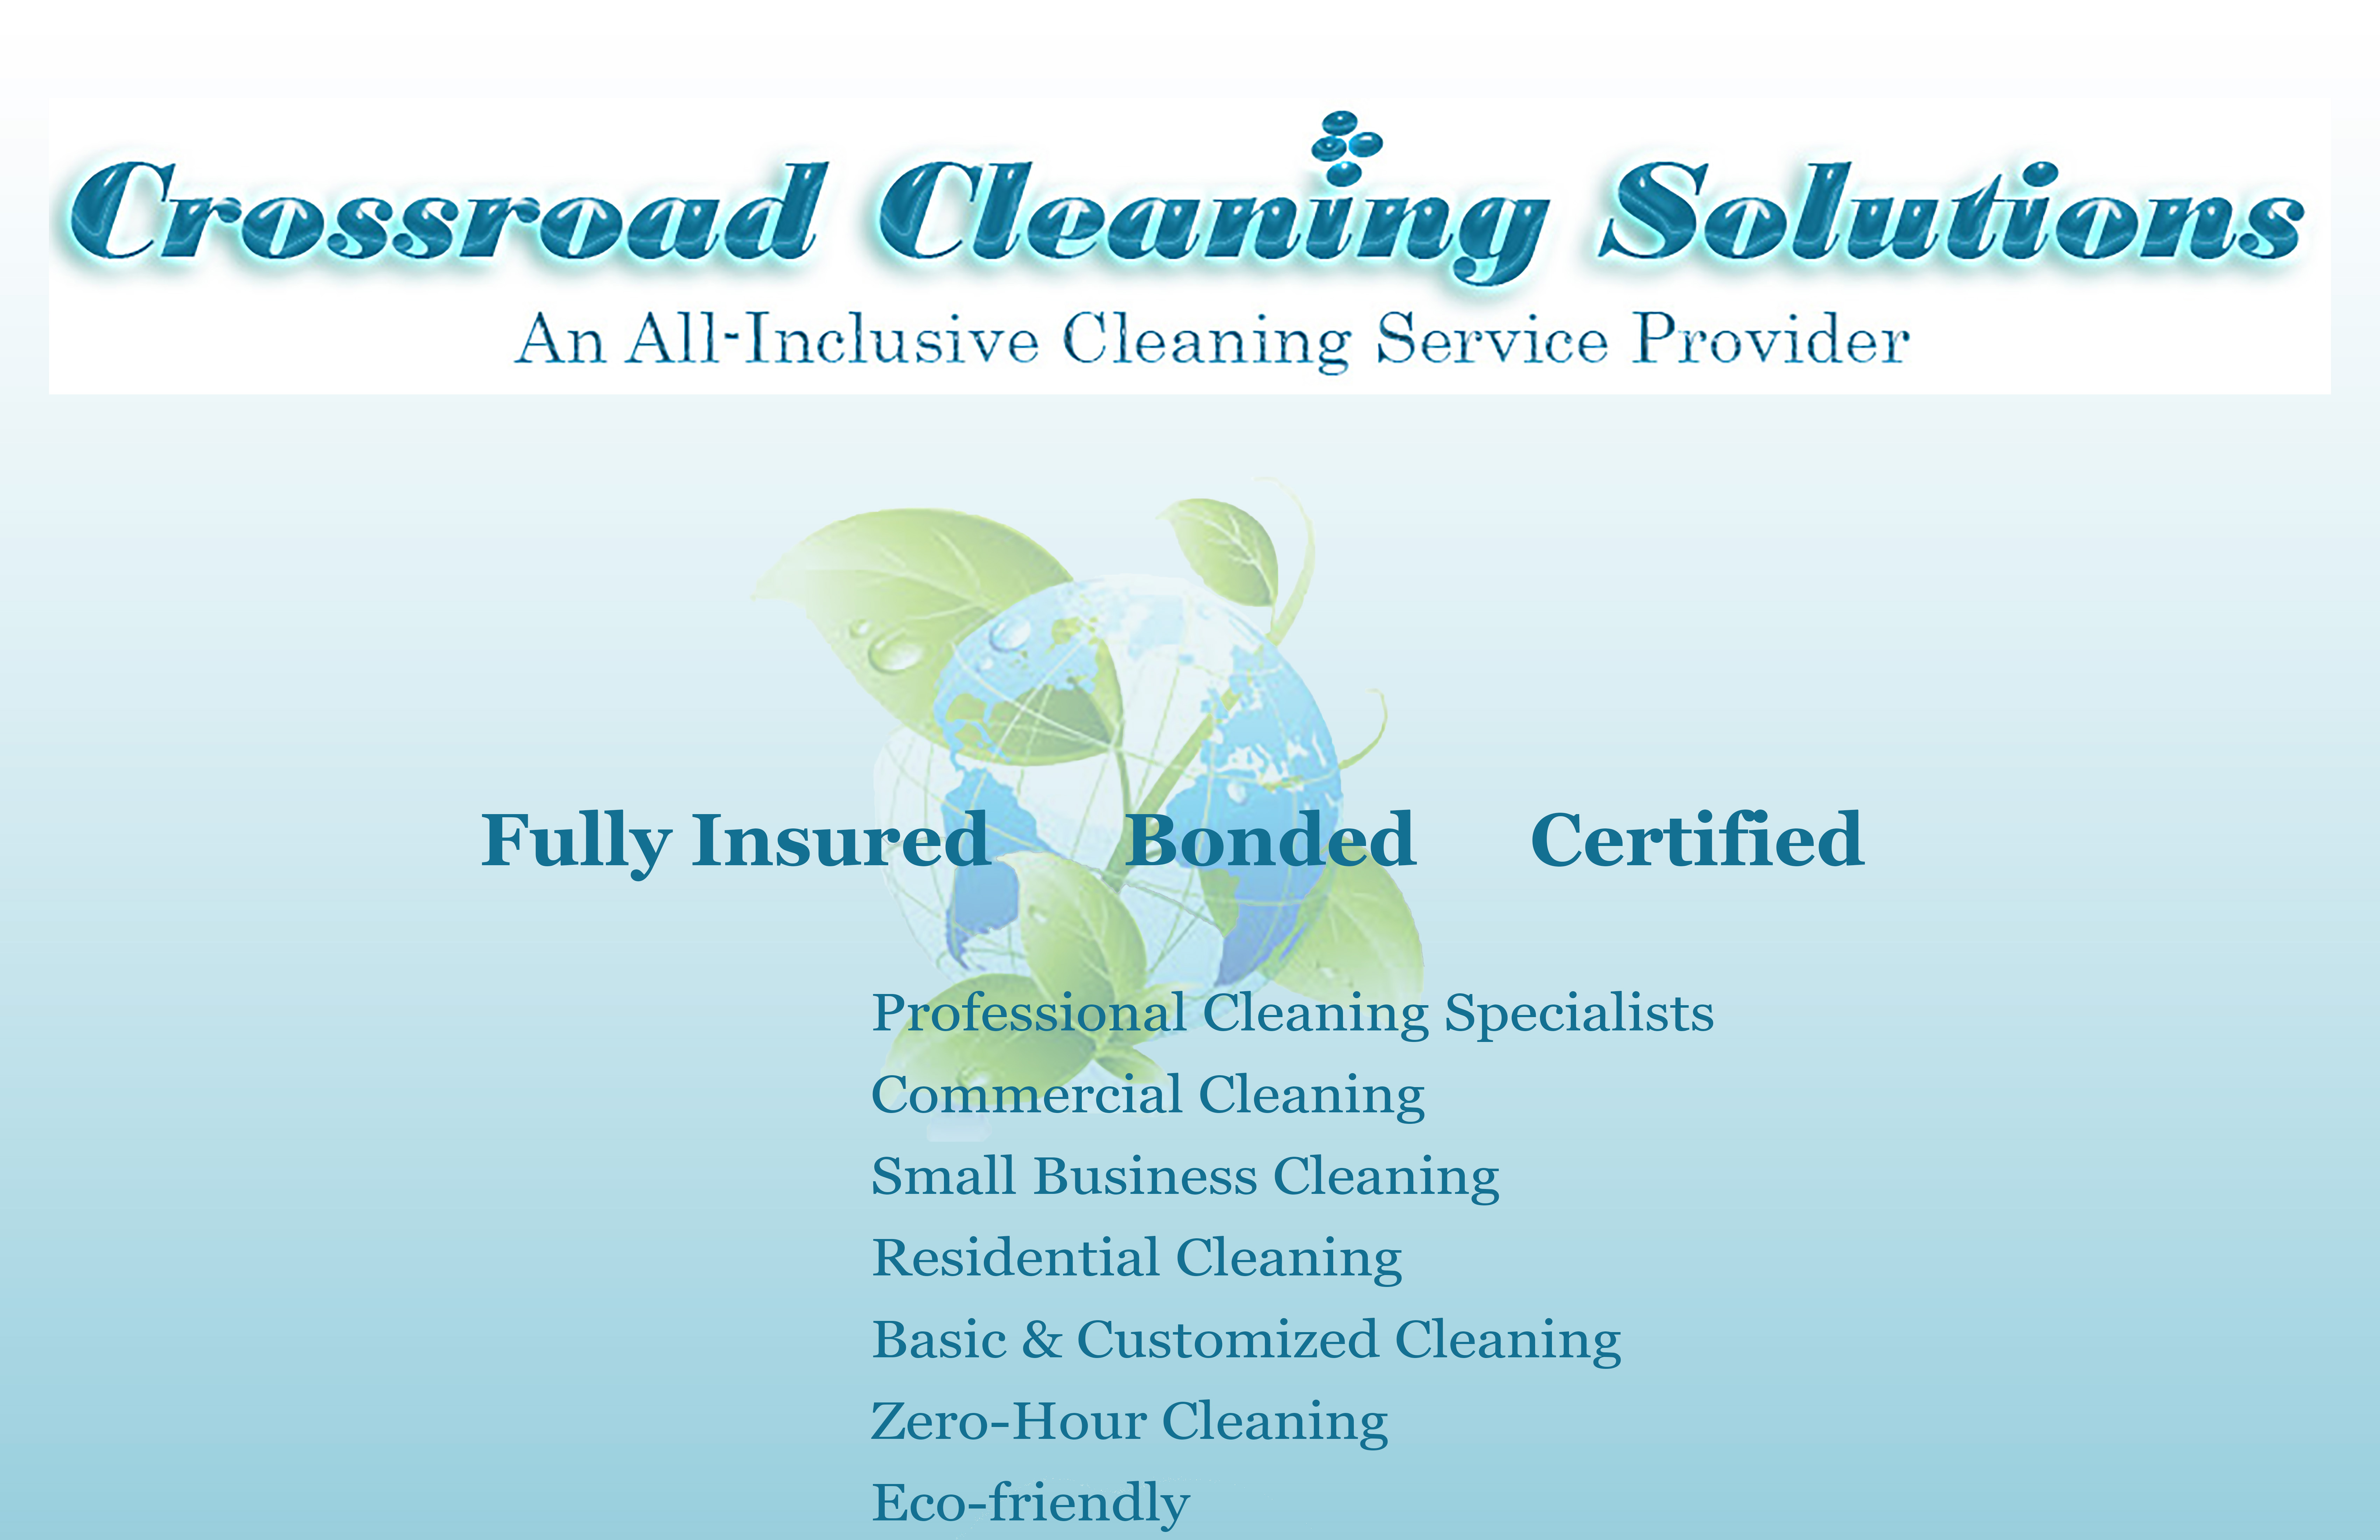 Crossroad Cleaning Solutions - Black Owned